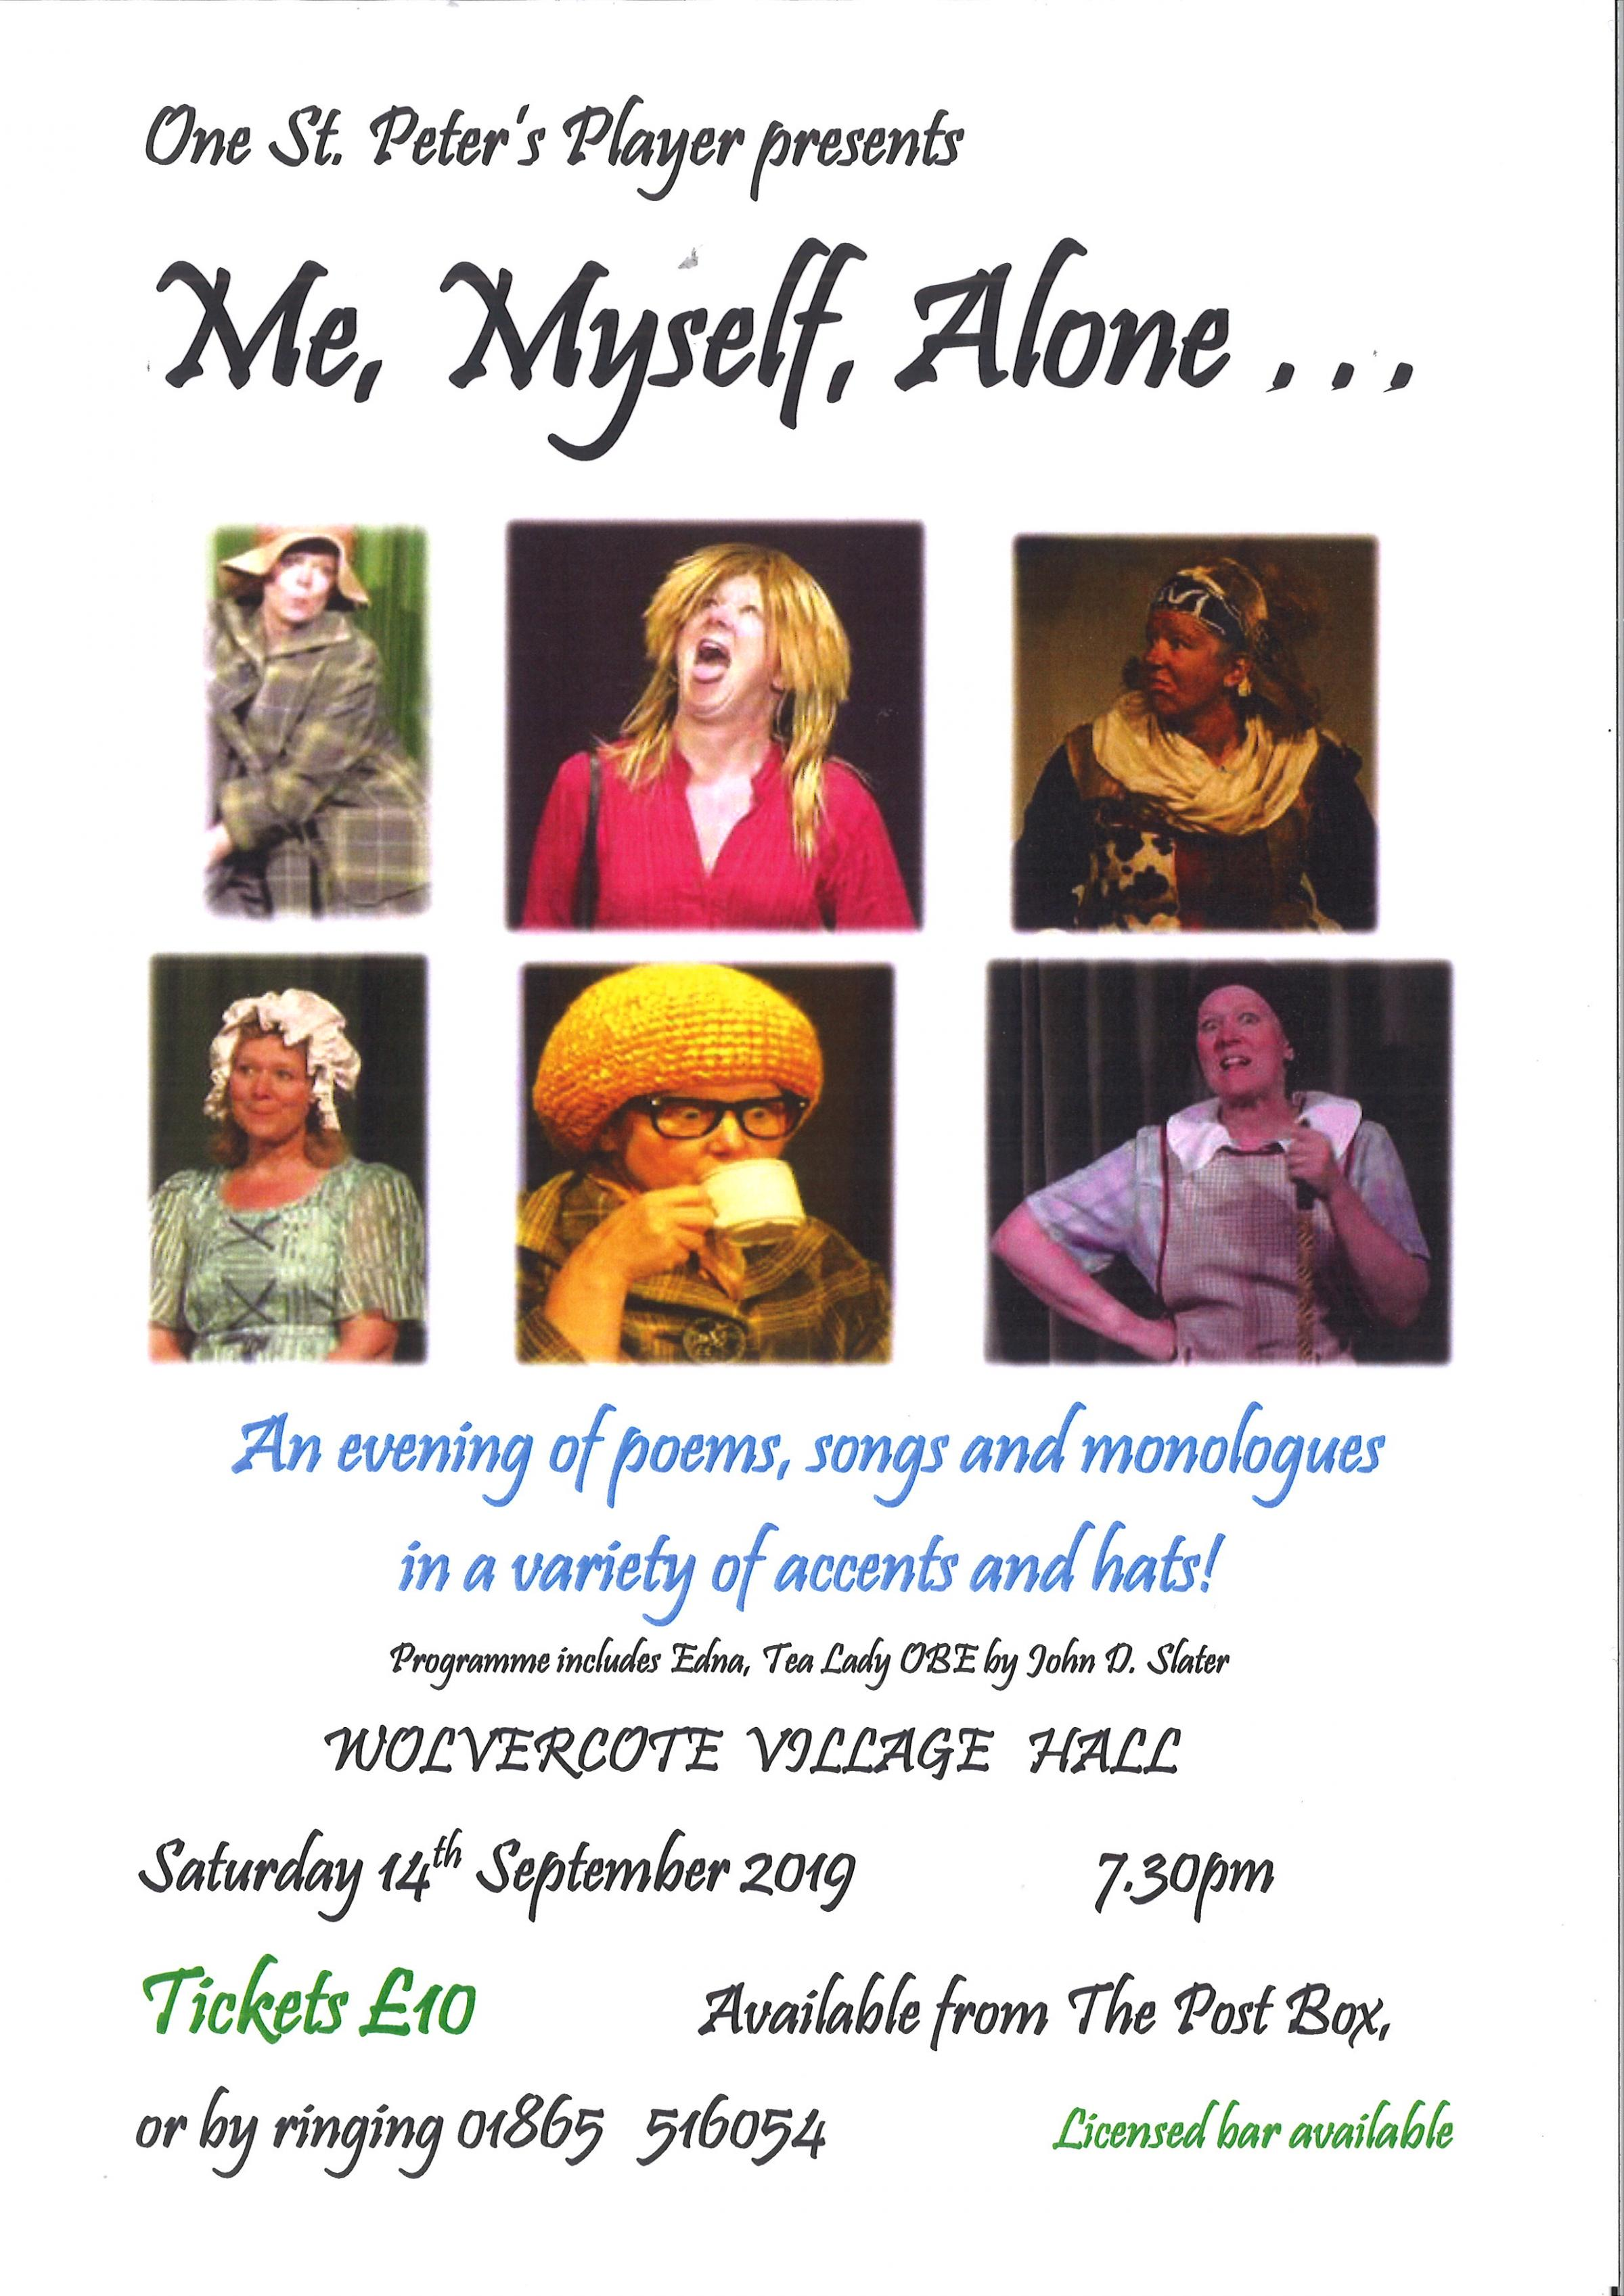 One St Peter's Player presents - Me, Myself, Alone...